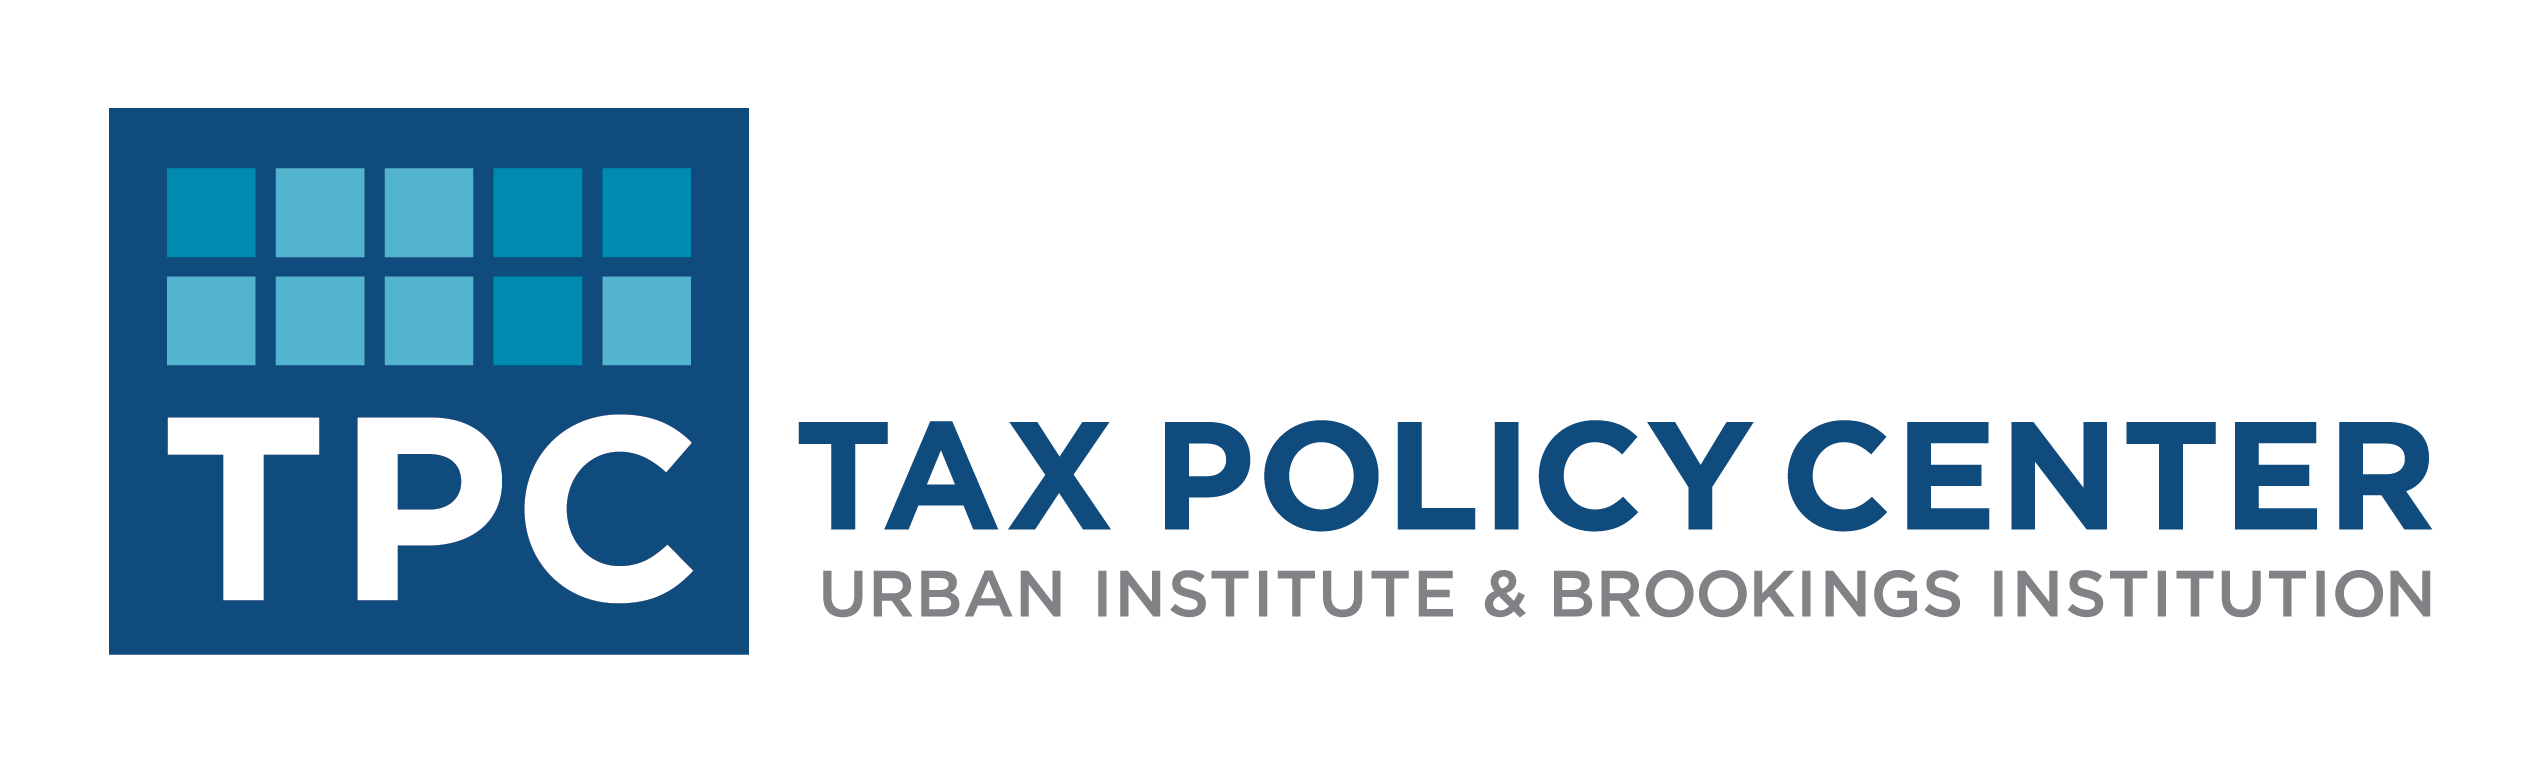 Tax Policcy Center Logo for Site